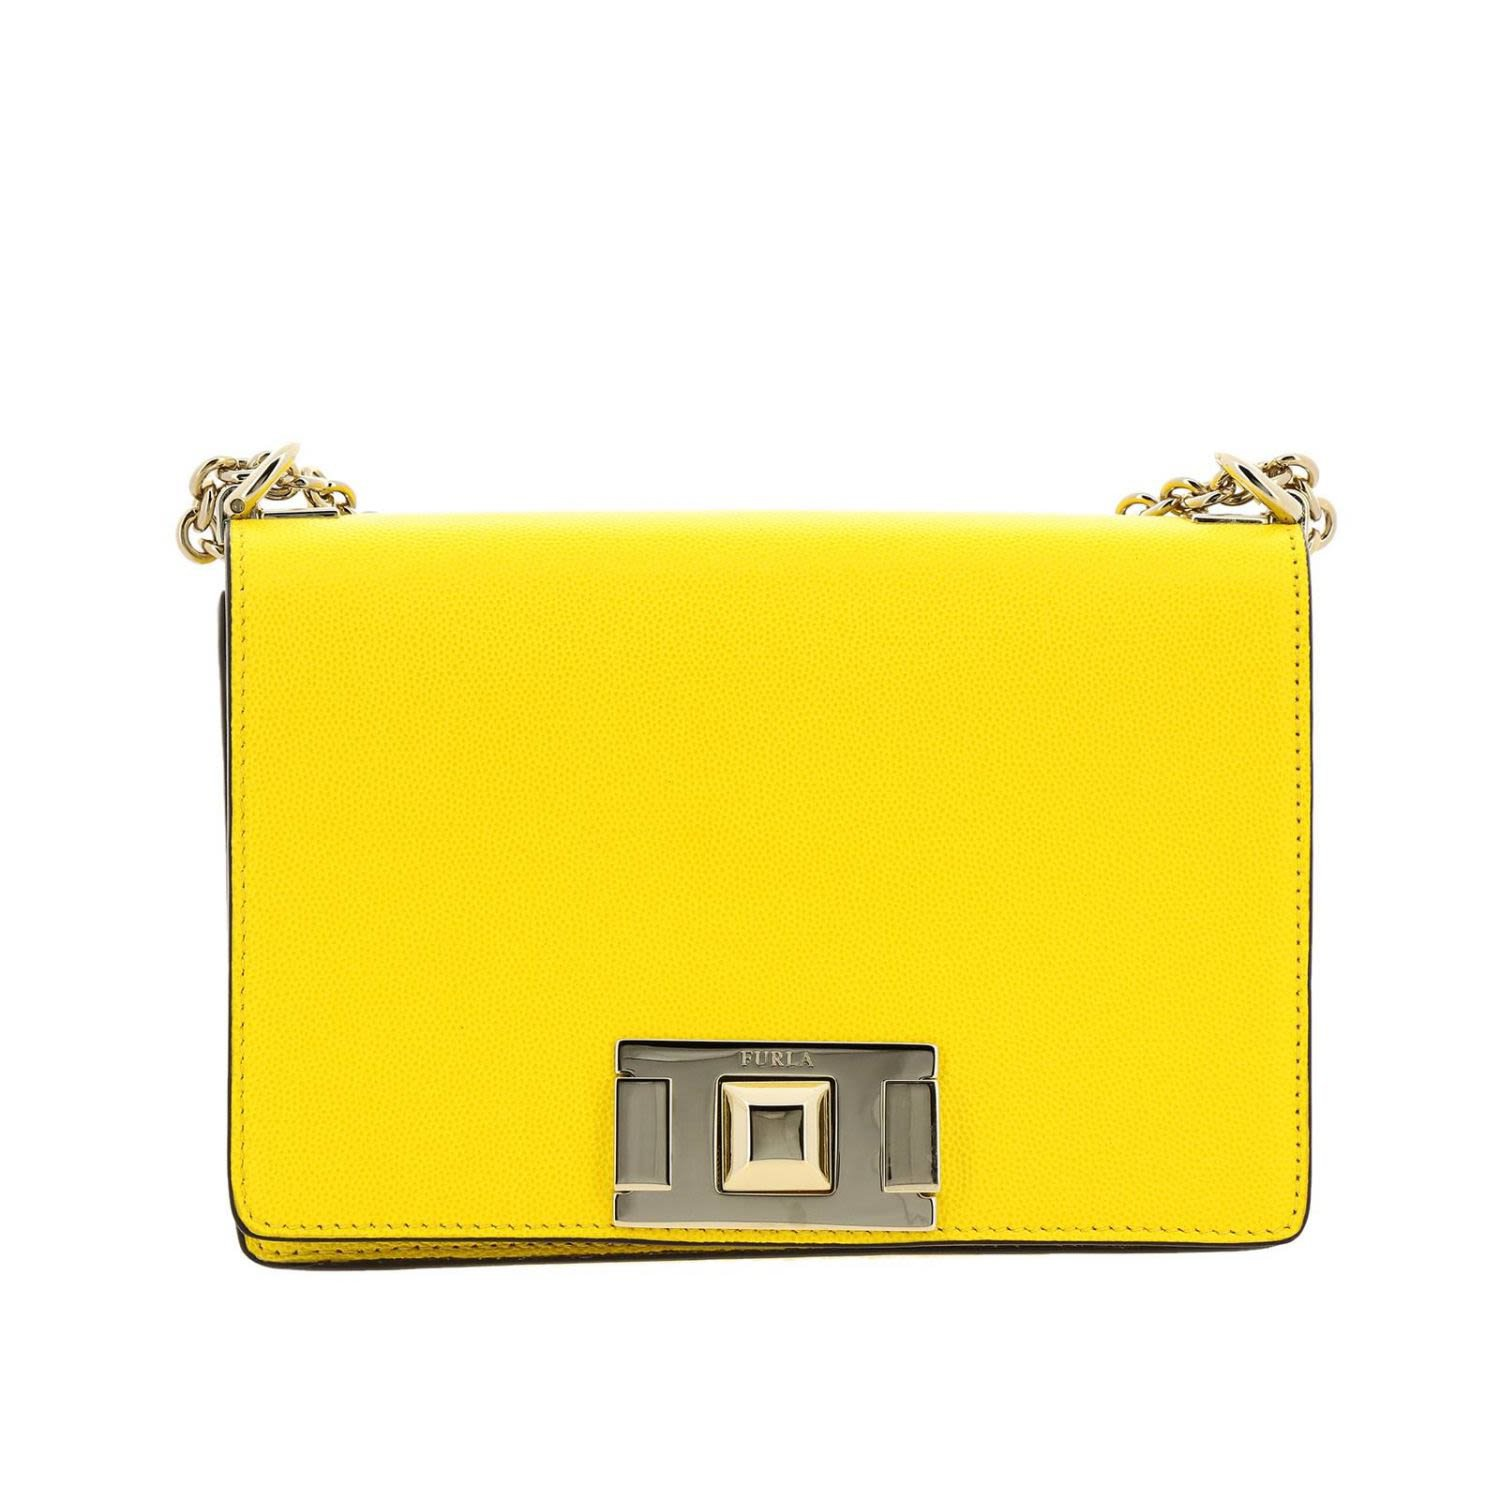 Furla Mini Bag Shoulder Bag Women Furla